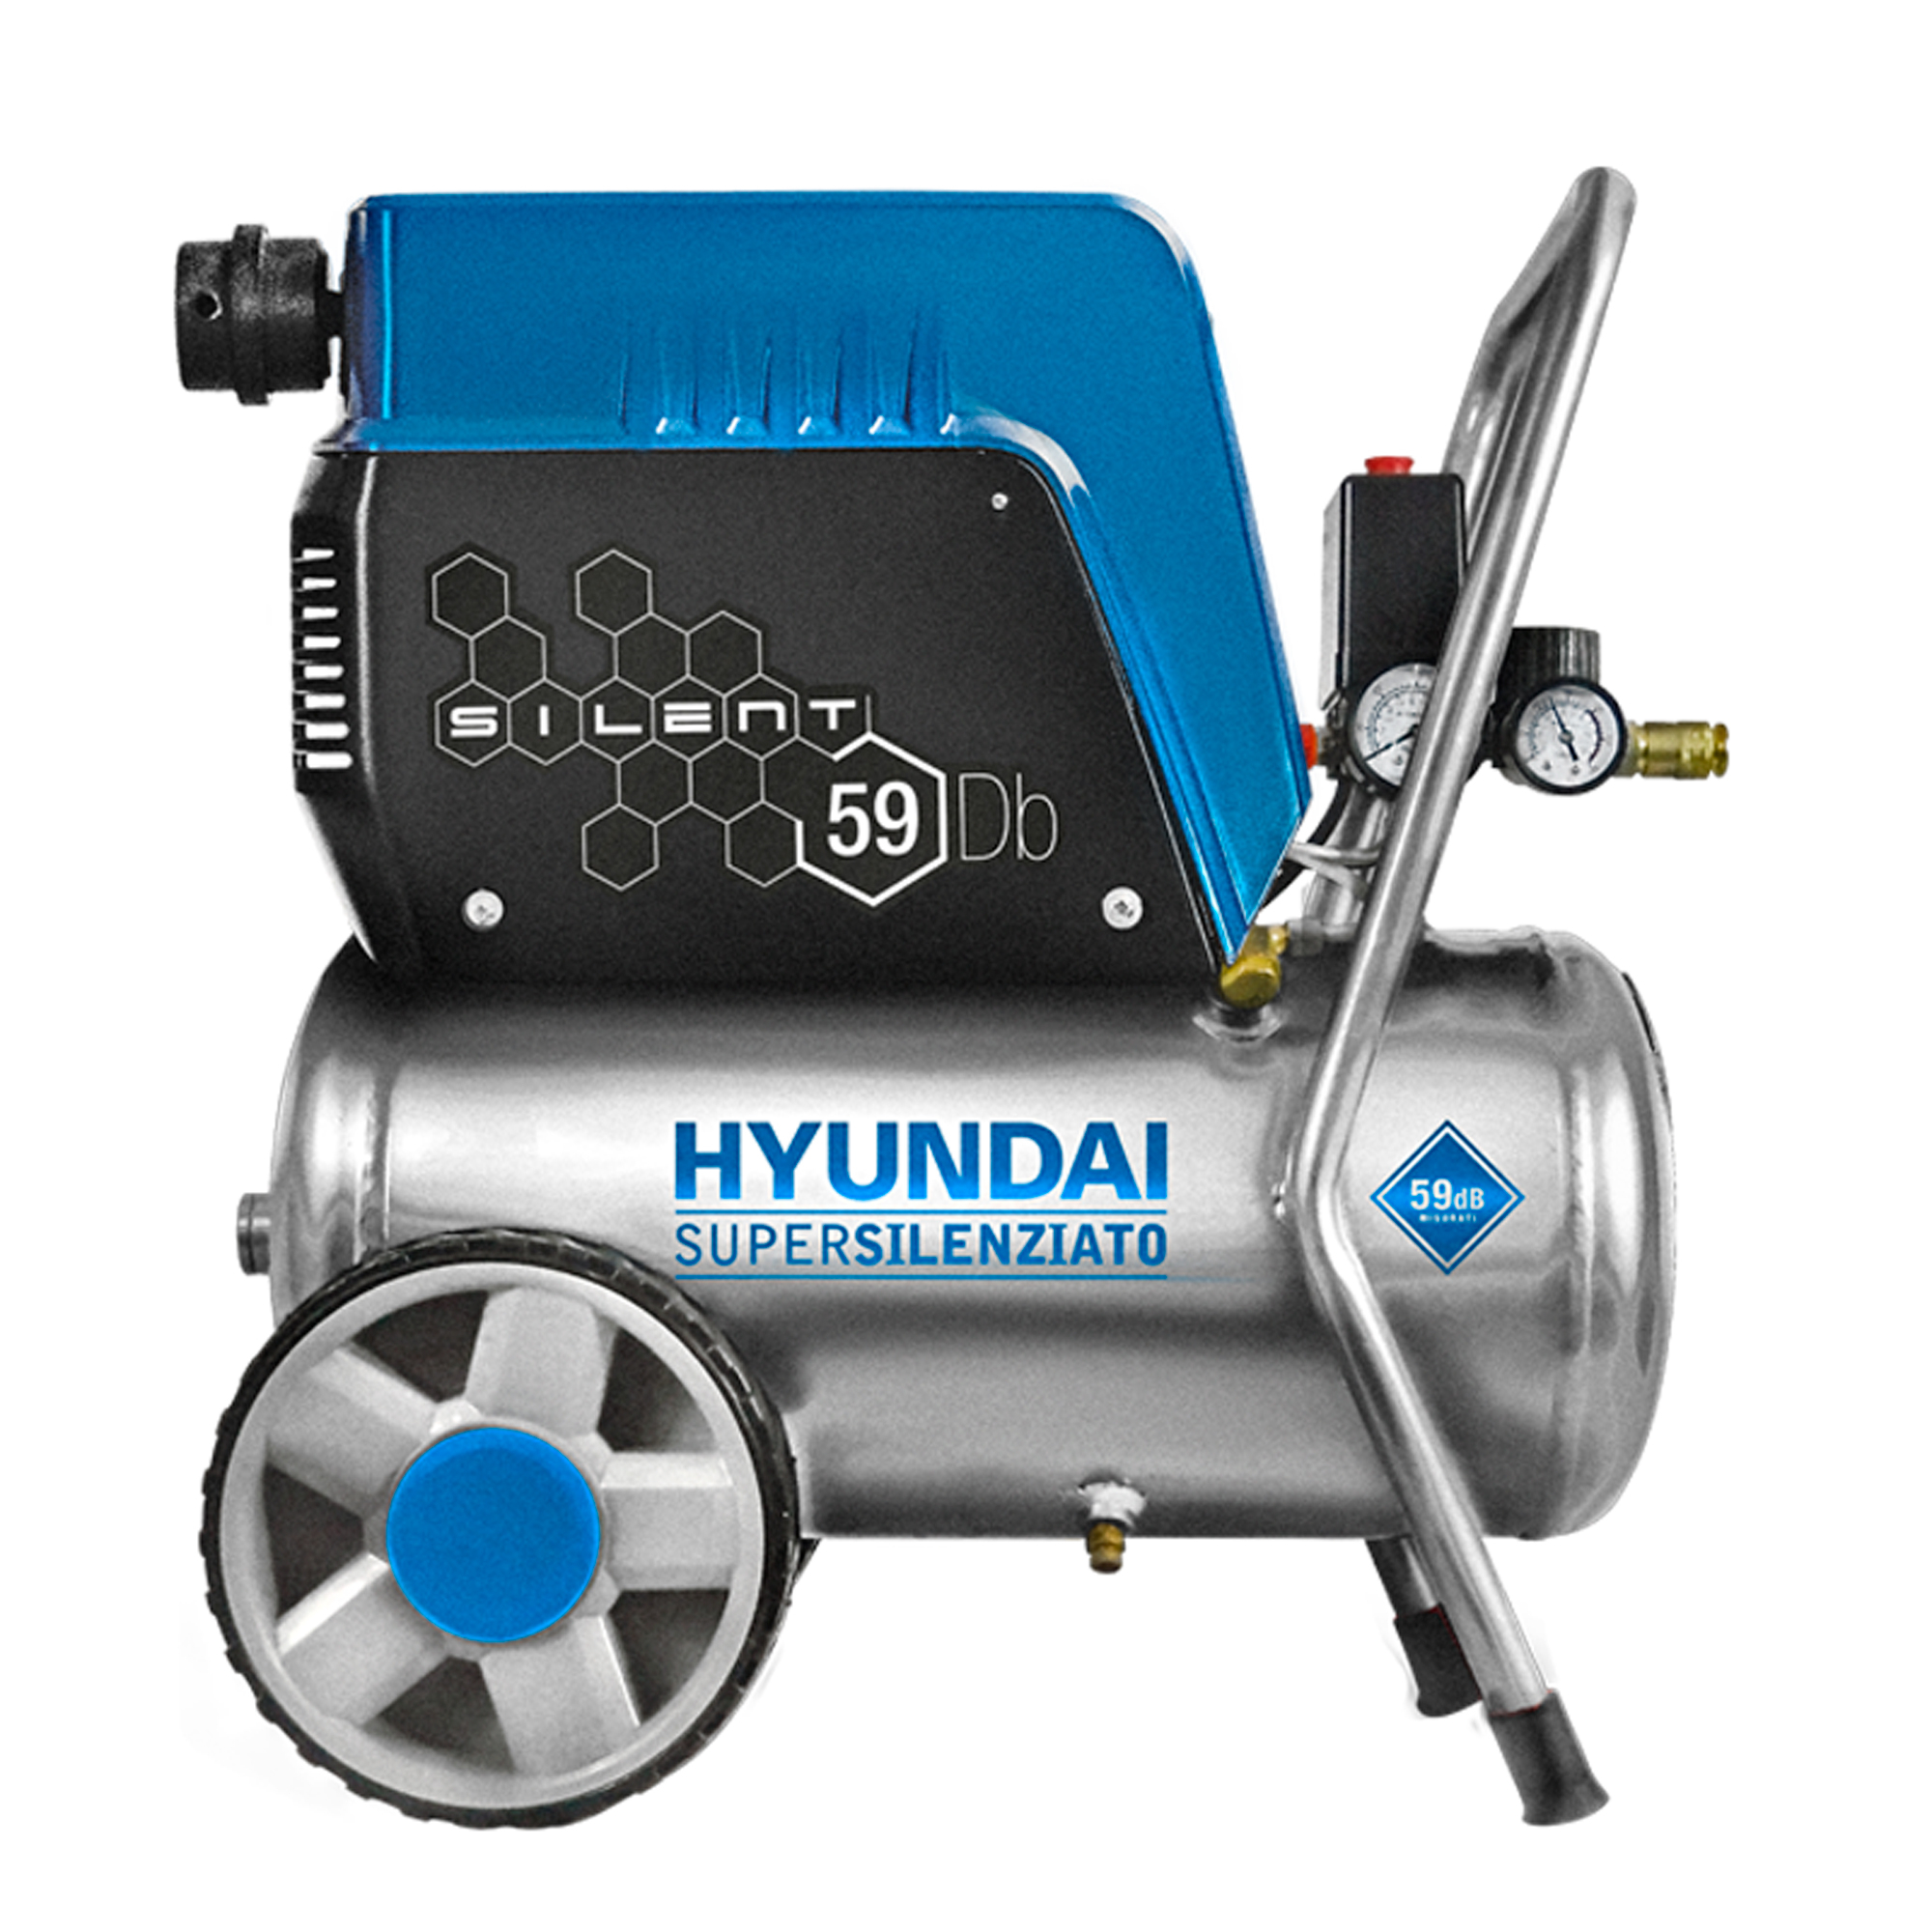 COMPRESSORE HYUNDAI SUPERSILENZIATO OILLESS CARENATO Cod. 65710 - 24 Litri